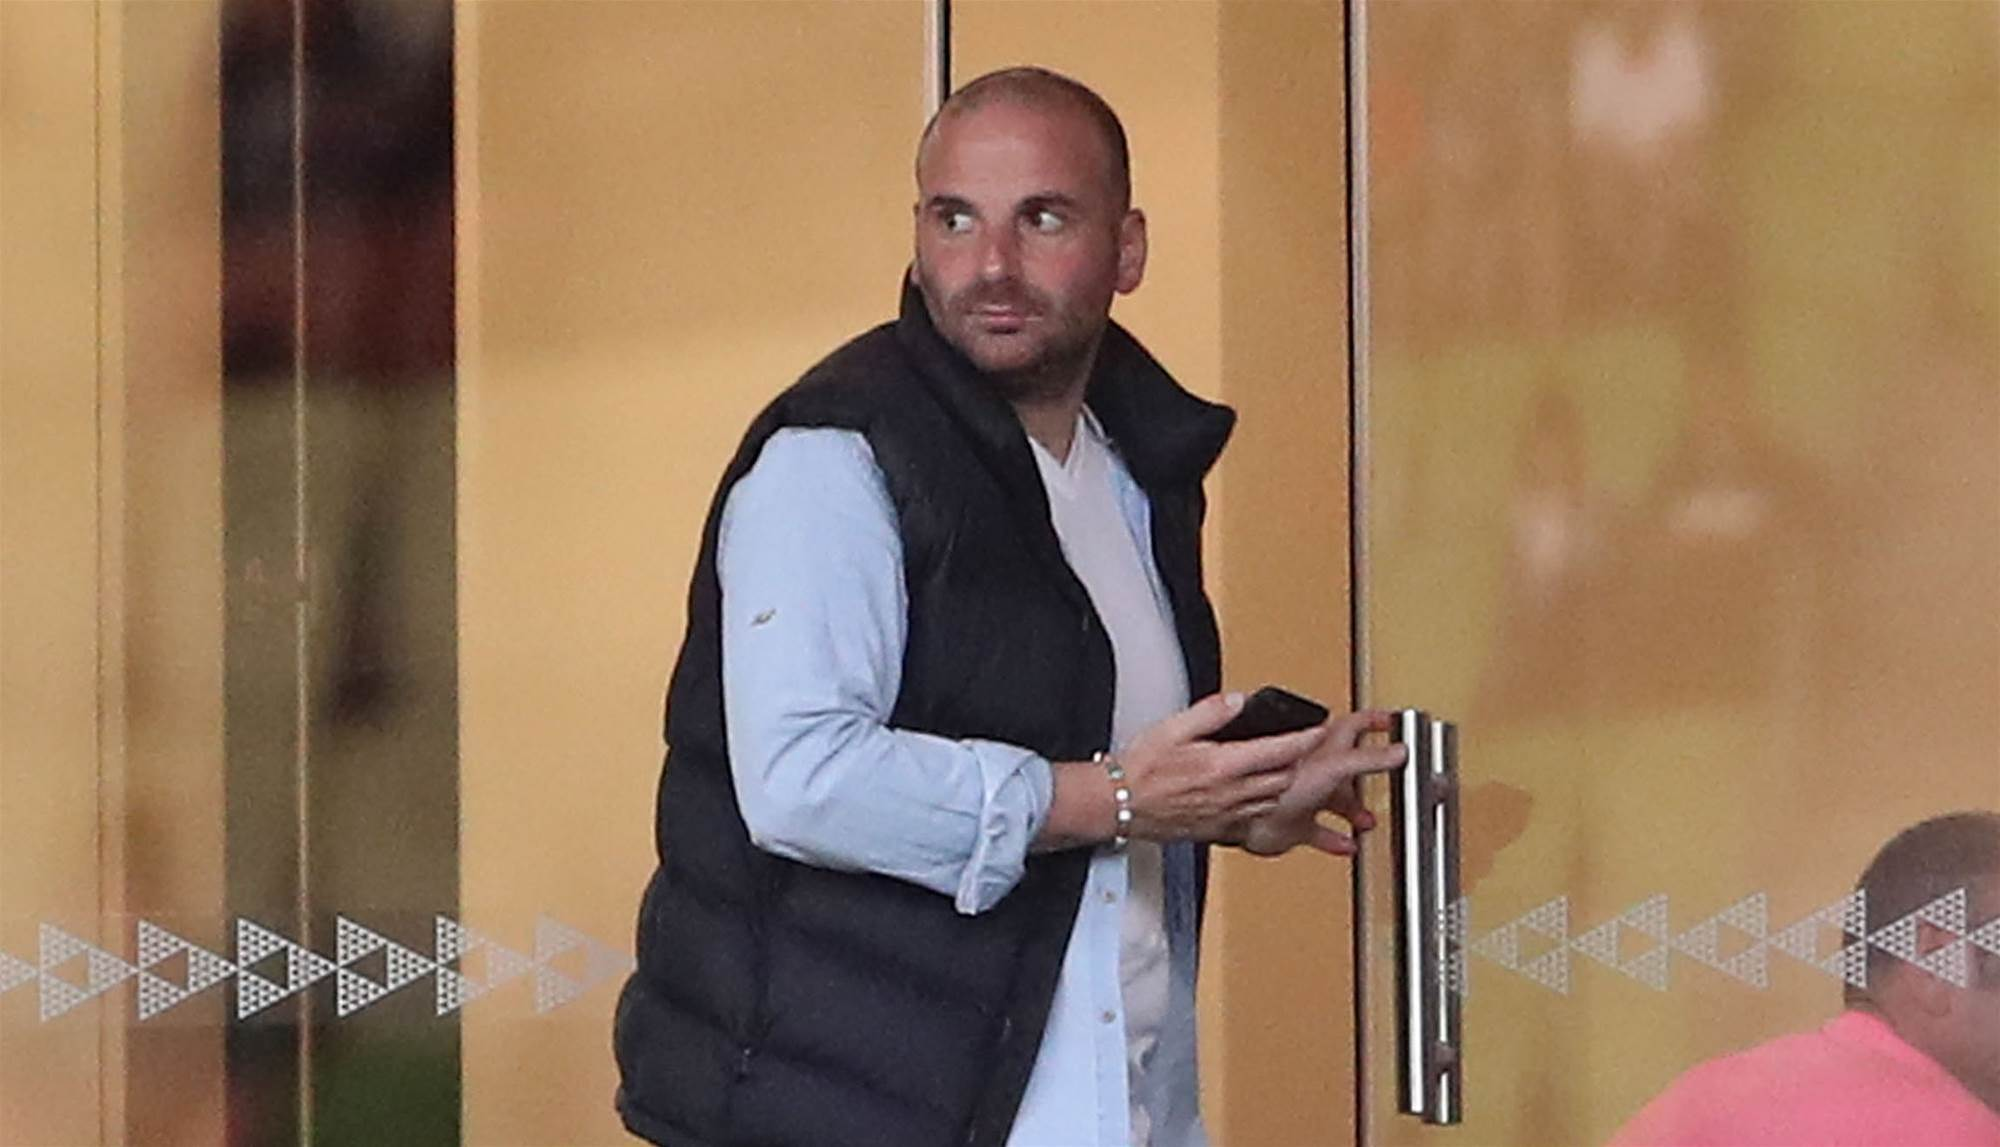 George Calombaris bans himself from A-League games